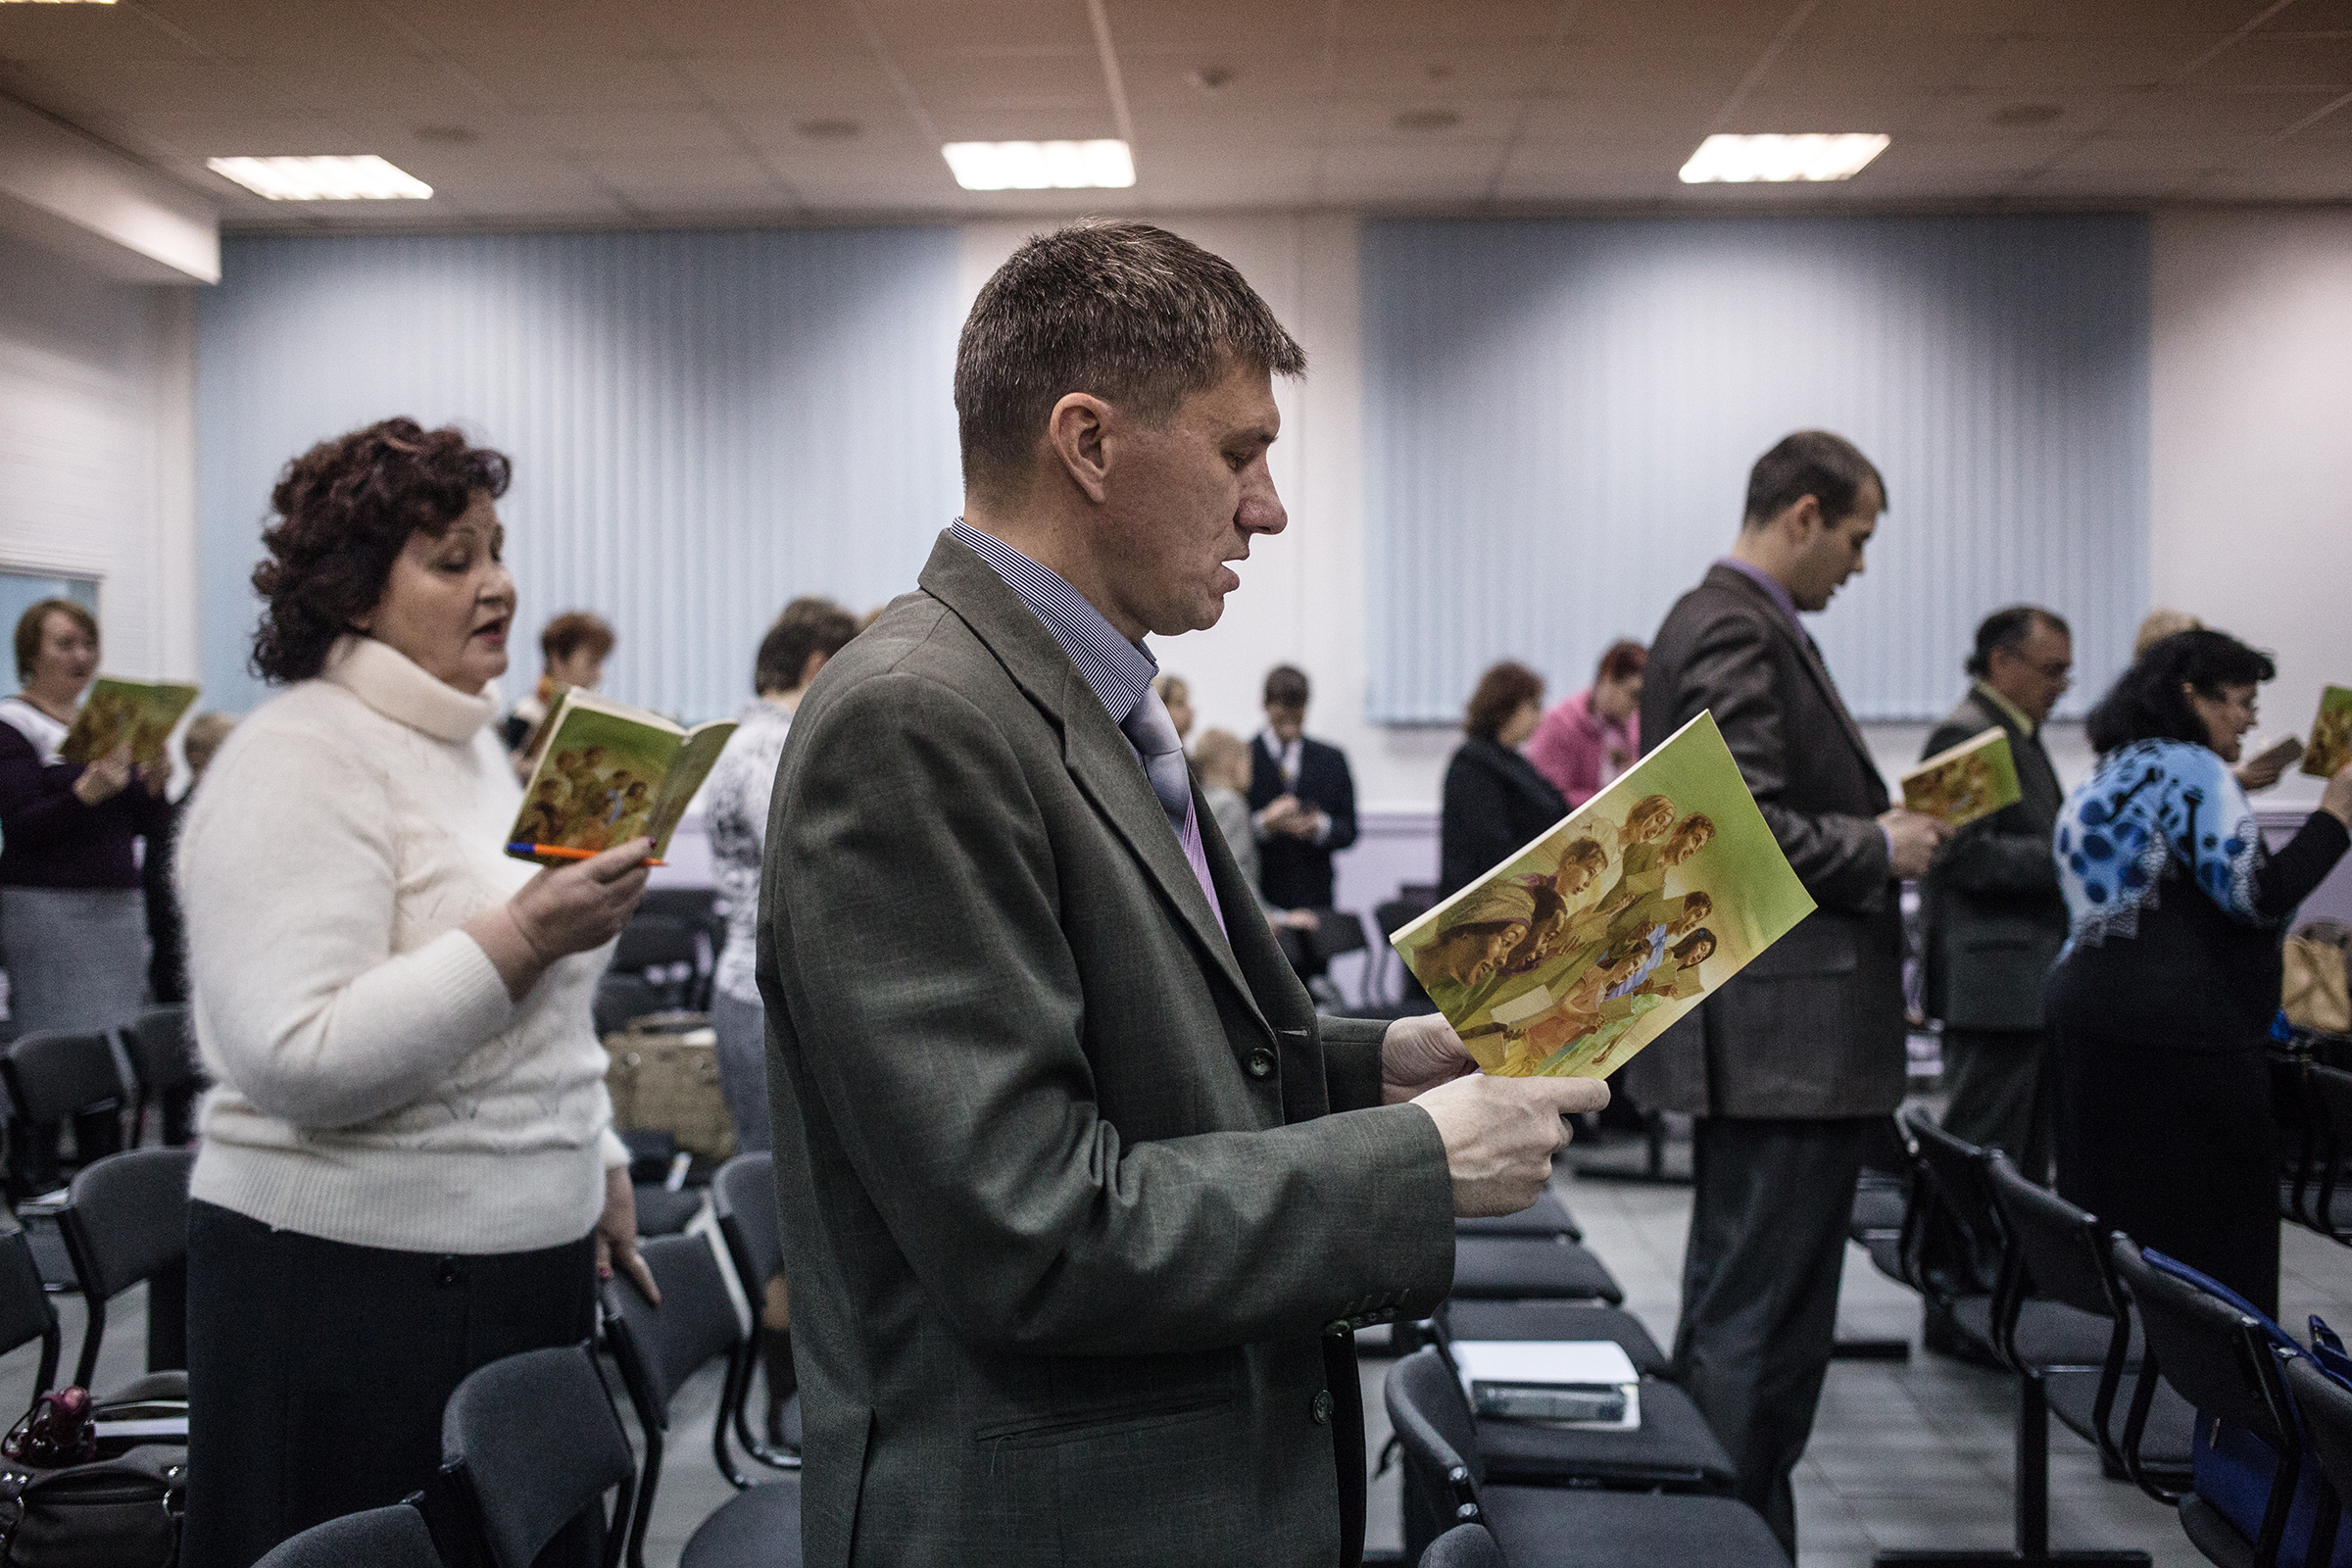 Jehovah's Witnesses sing songs at the beginning of a meeting in Rostov-on-Don on Nov. 13, 2015.